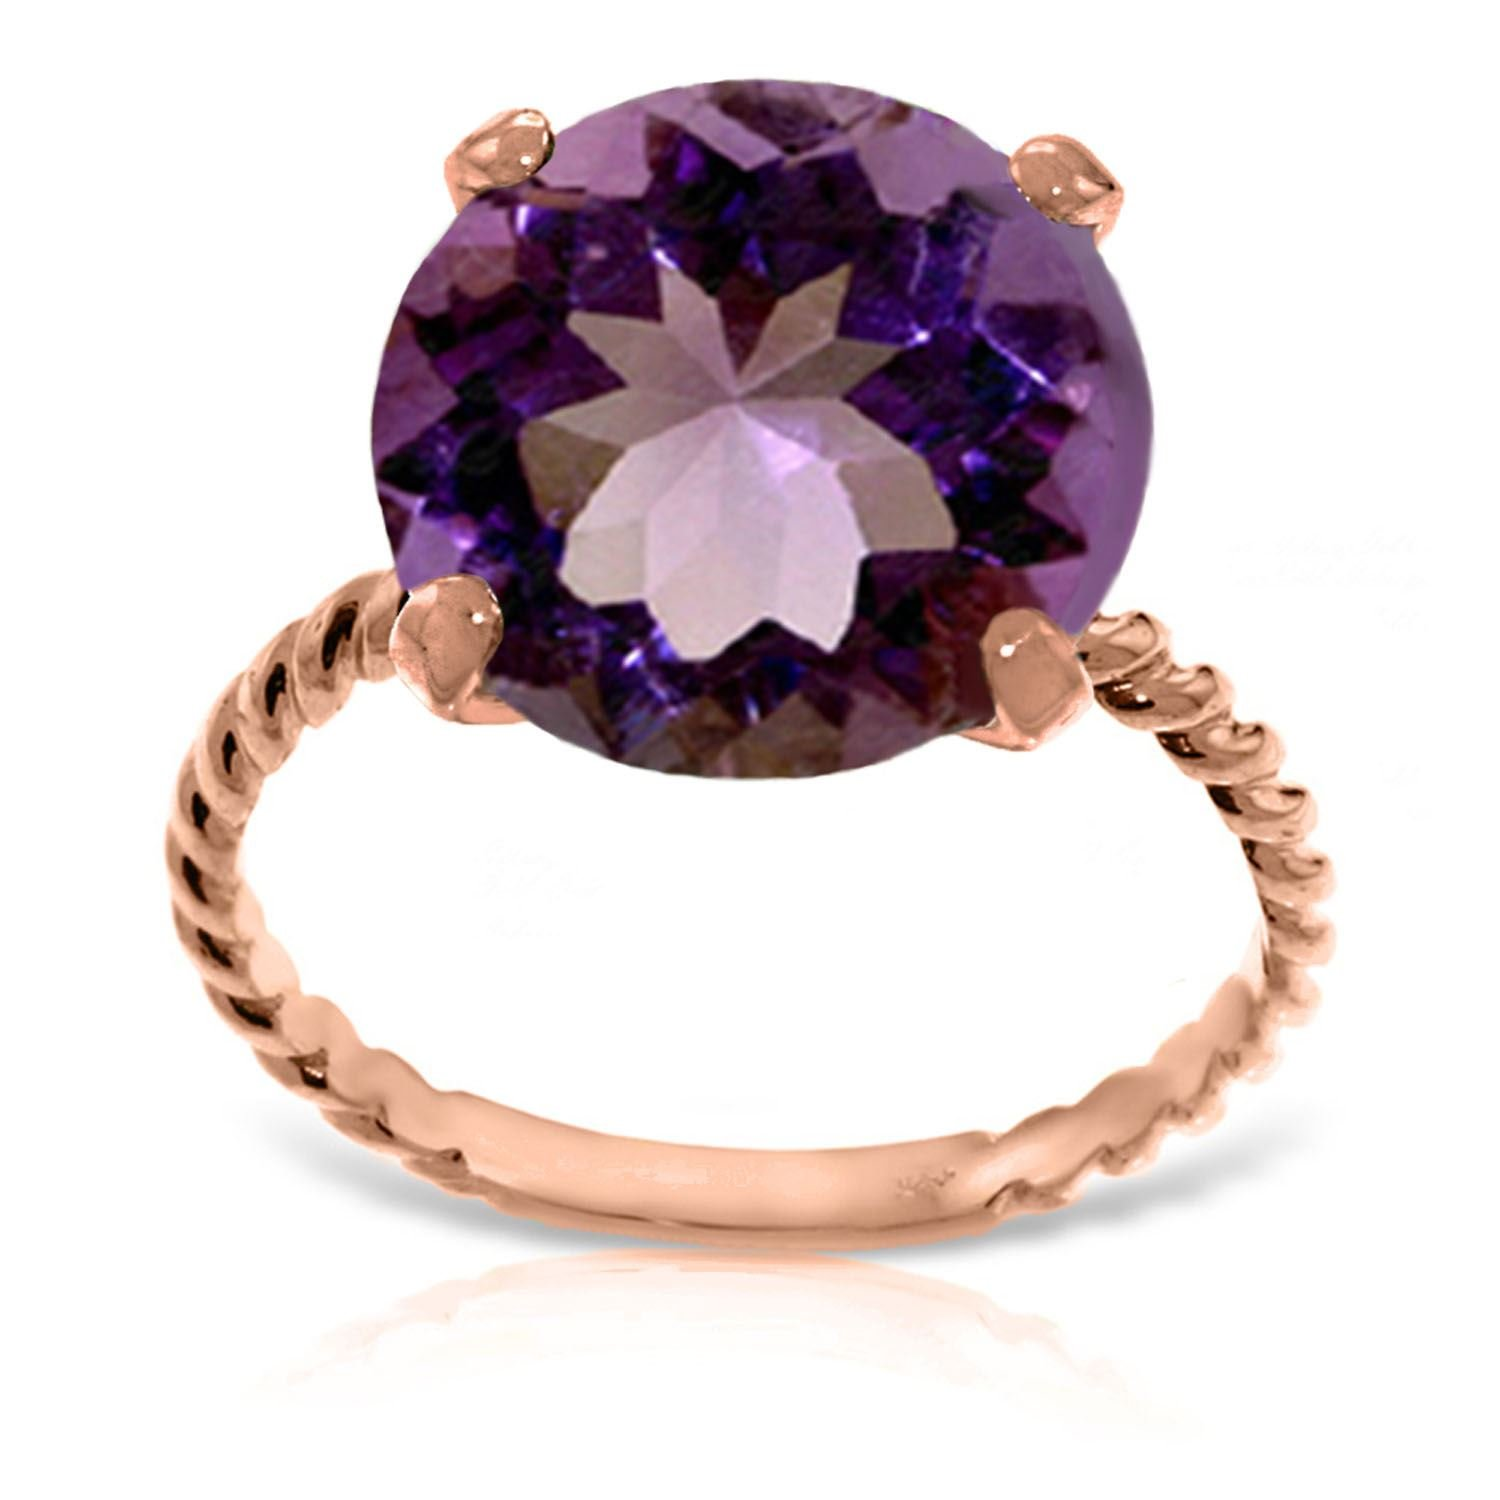 ALARRI 14K Solid Rose Gold Ring w/ Natural 12.0 mm Round Amethyst With Ring Size 10